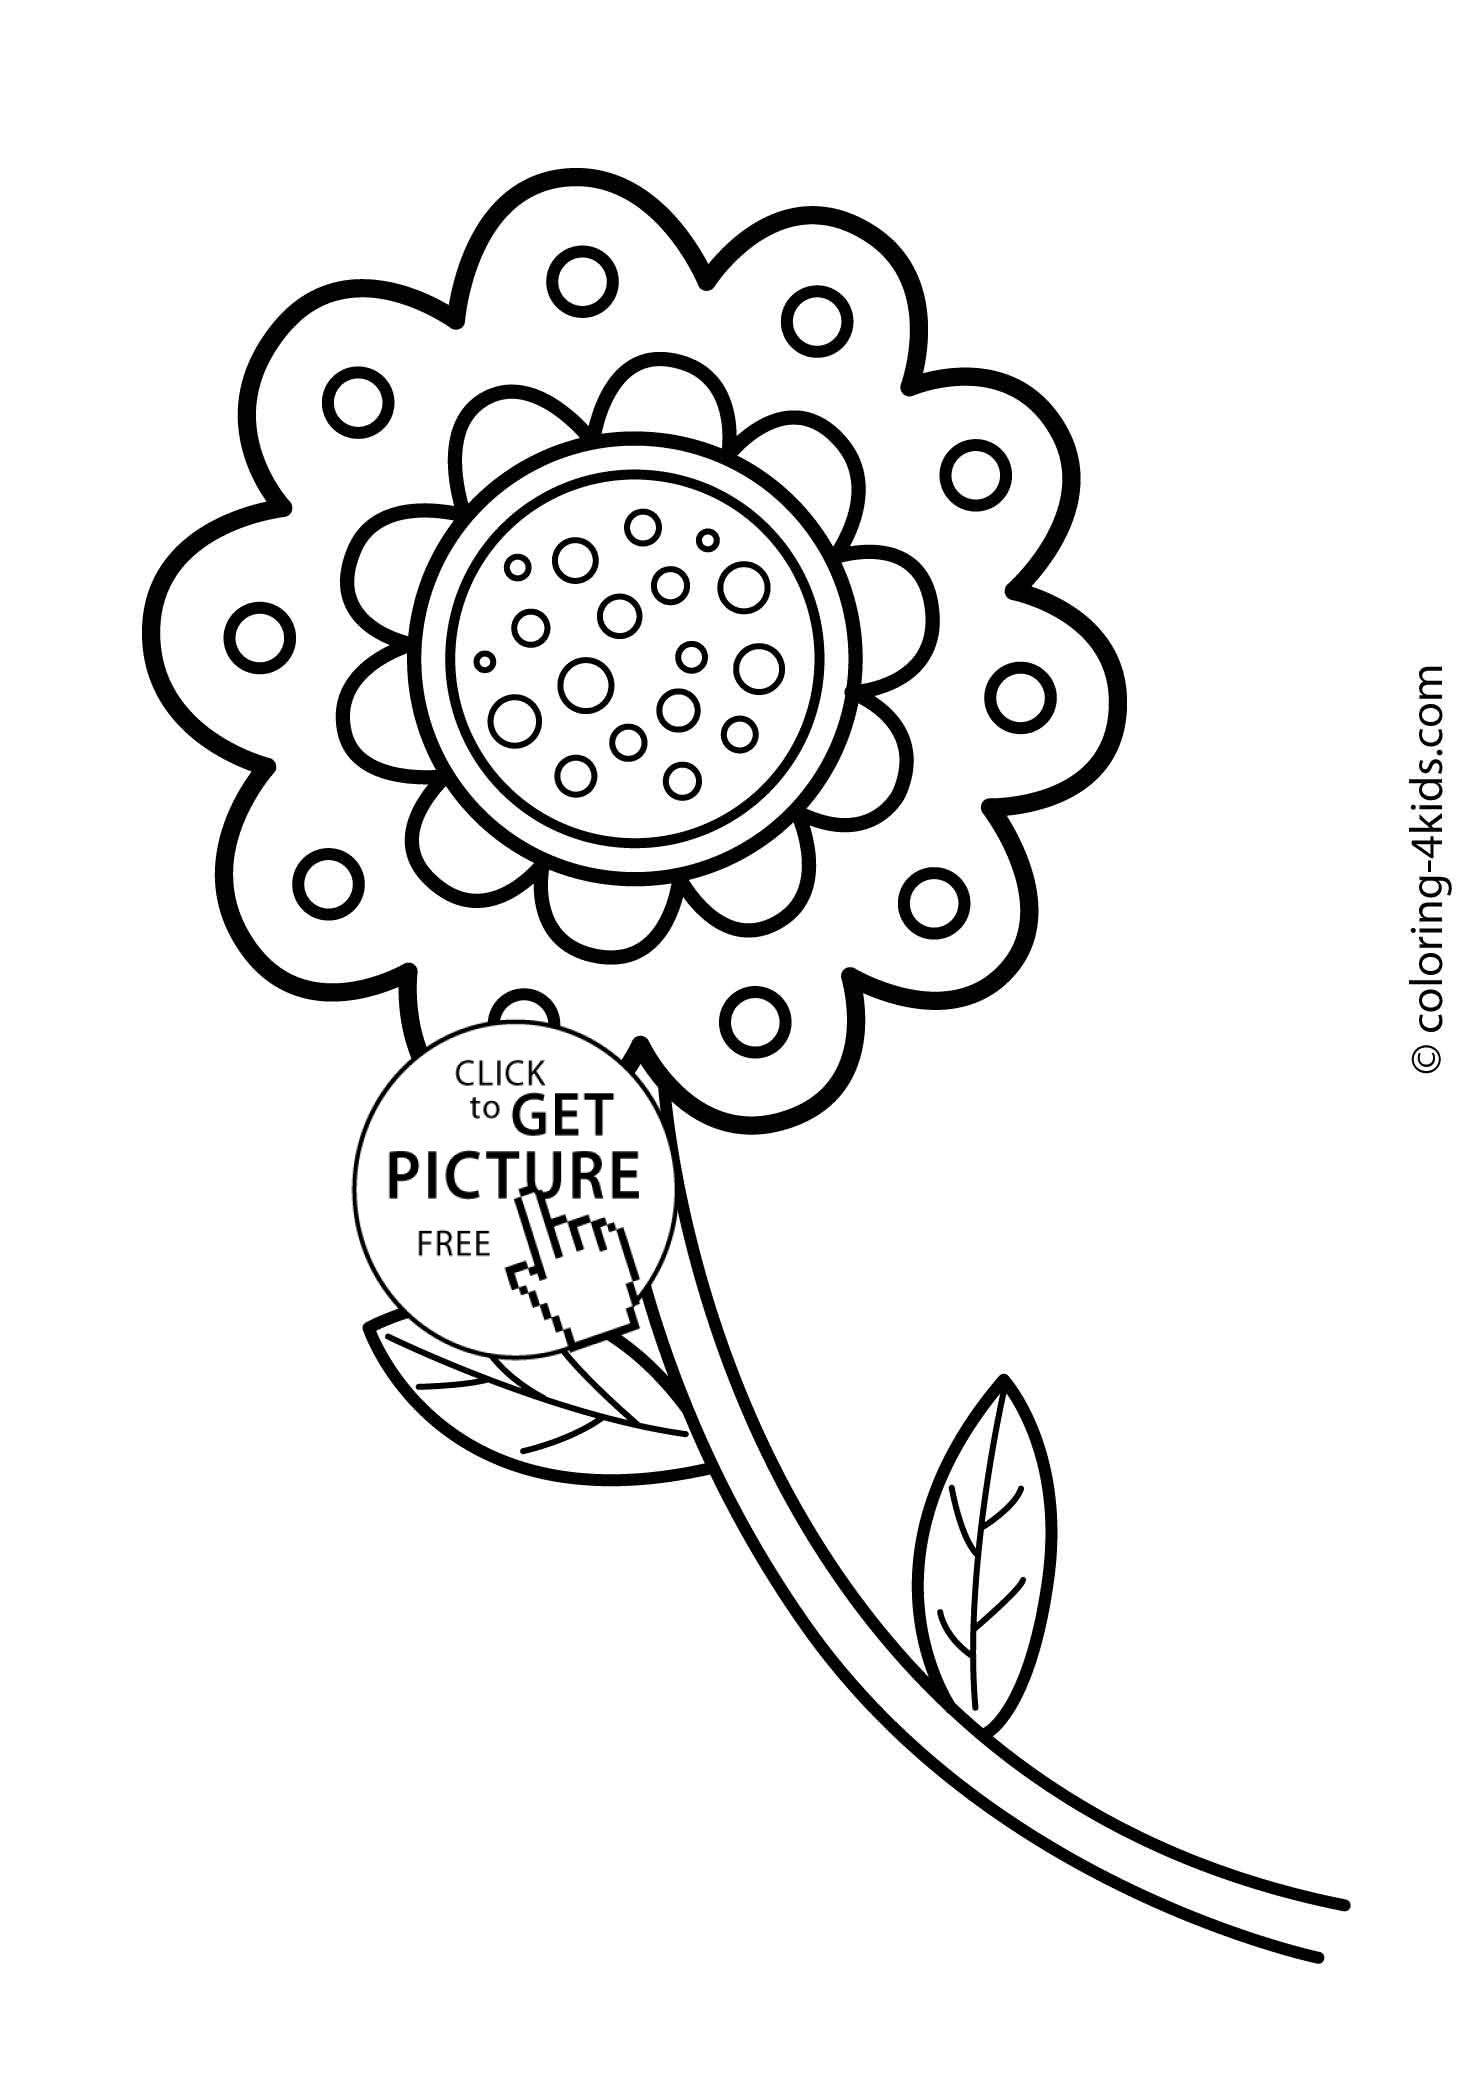 Flower coloring pages for kids, printable, 11